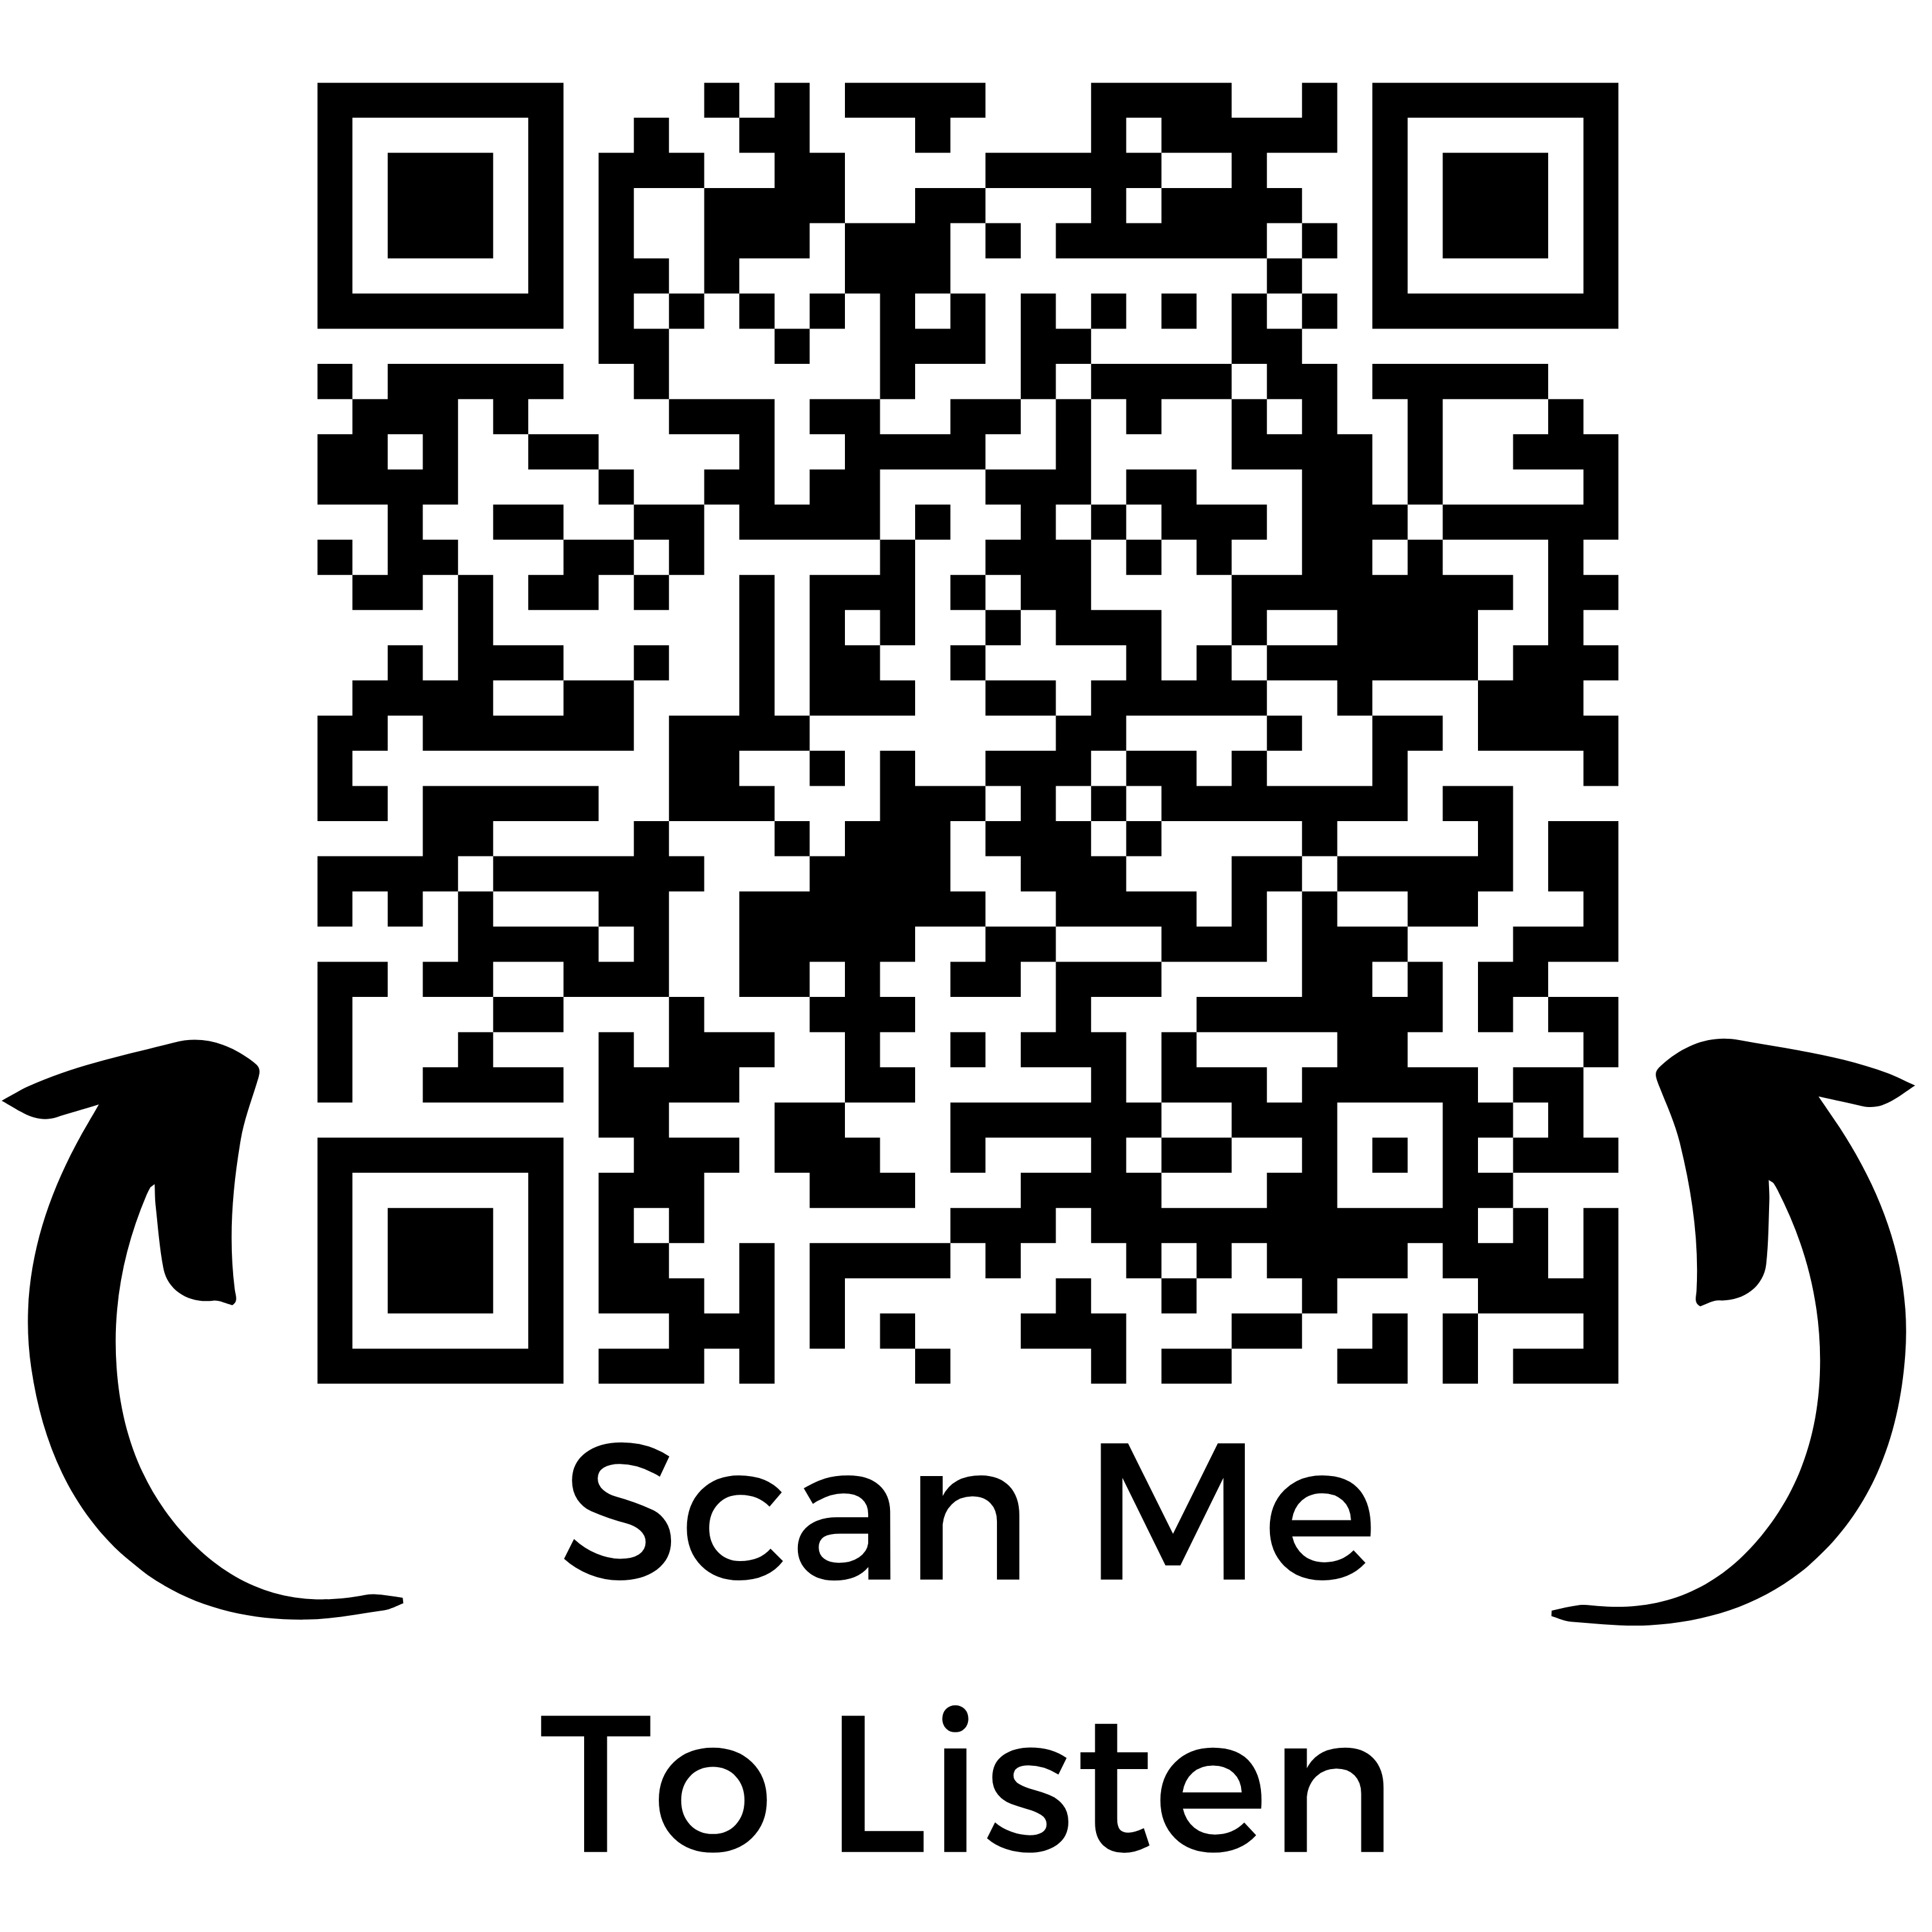 Scan Me qr code linking to tampertech Spotify